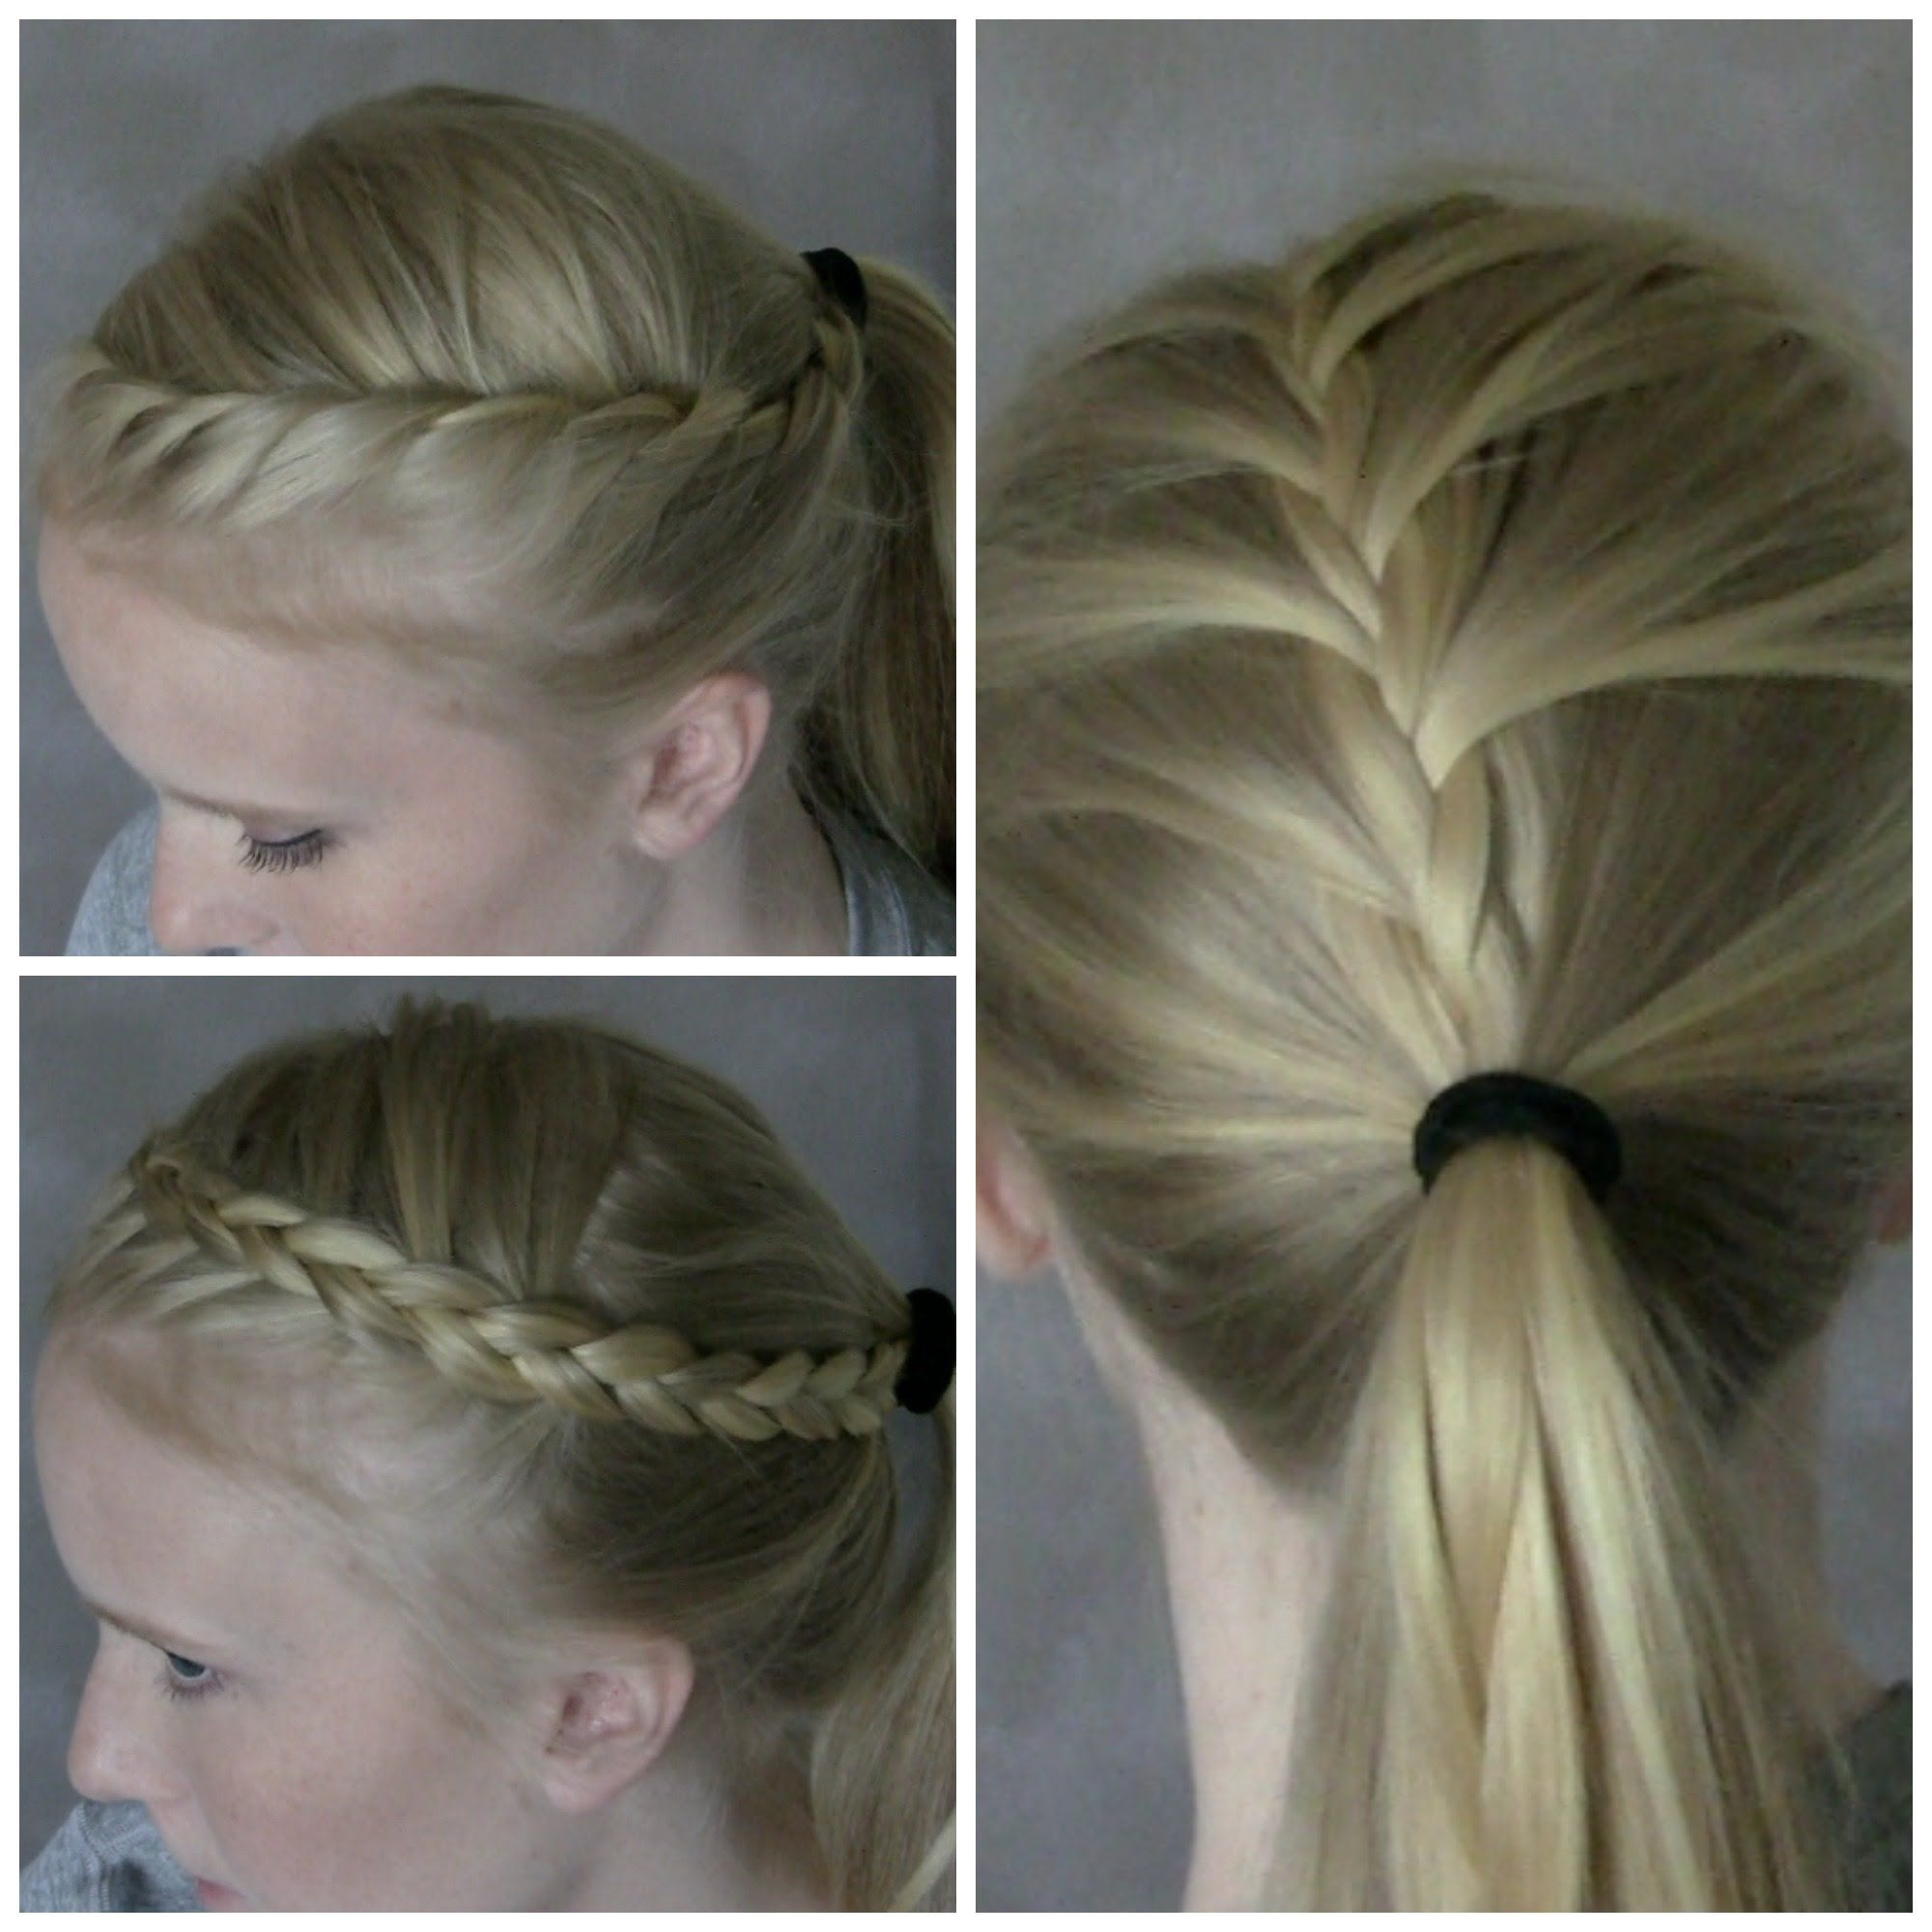 Best Athletic Hairstyles! | Hair Do's | Pinterest | Athletic Intended For Sporty Updo Hairstyles For Short Hair (View 11 of 15)